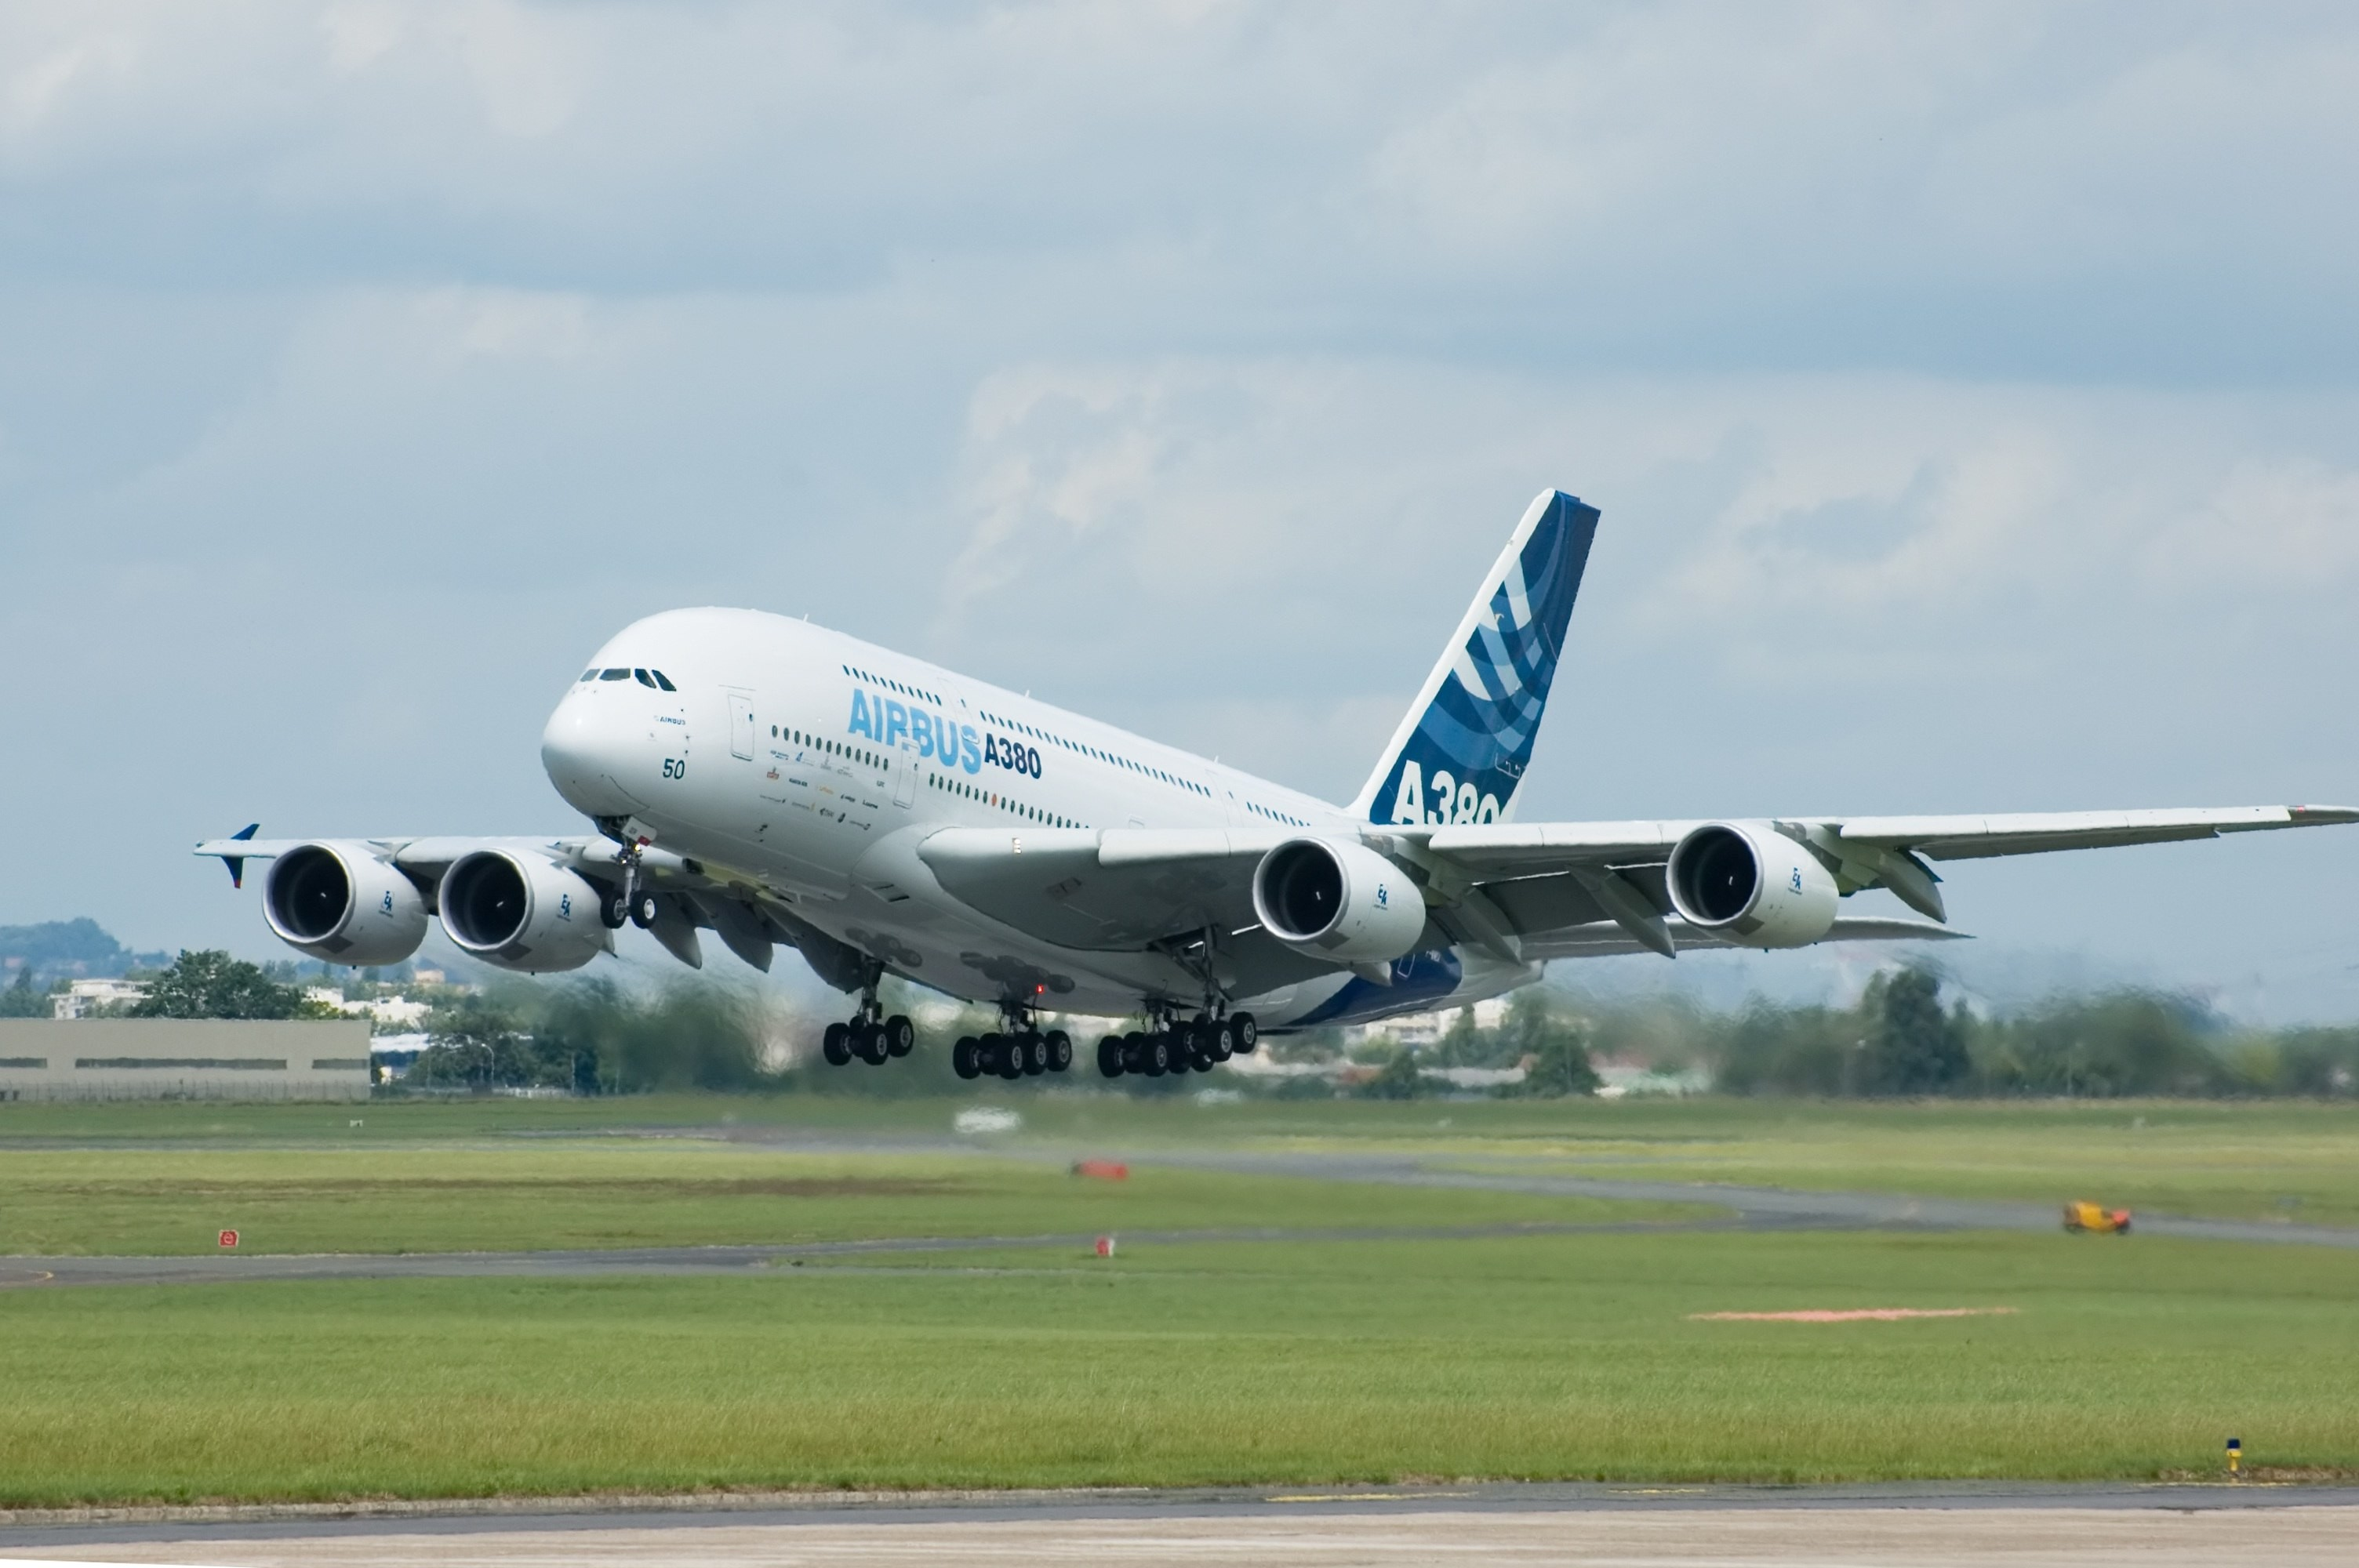 3008x2000 Airbus A380 HD Wallpaper for free. Download Airbus A380 Photo for your  Desktop Background under